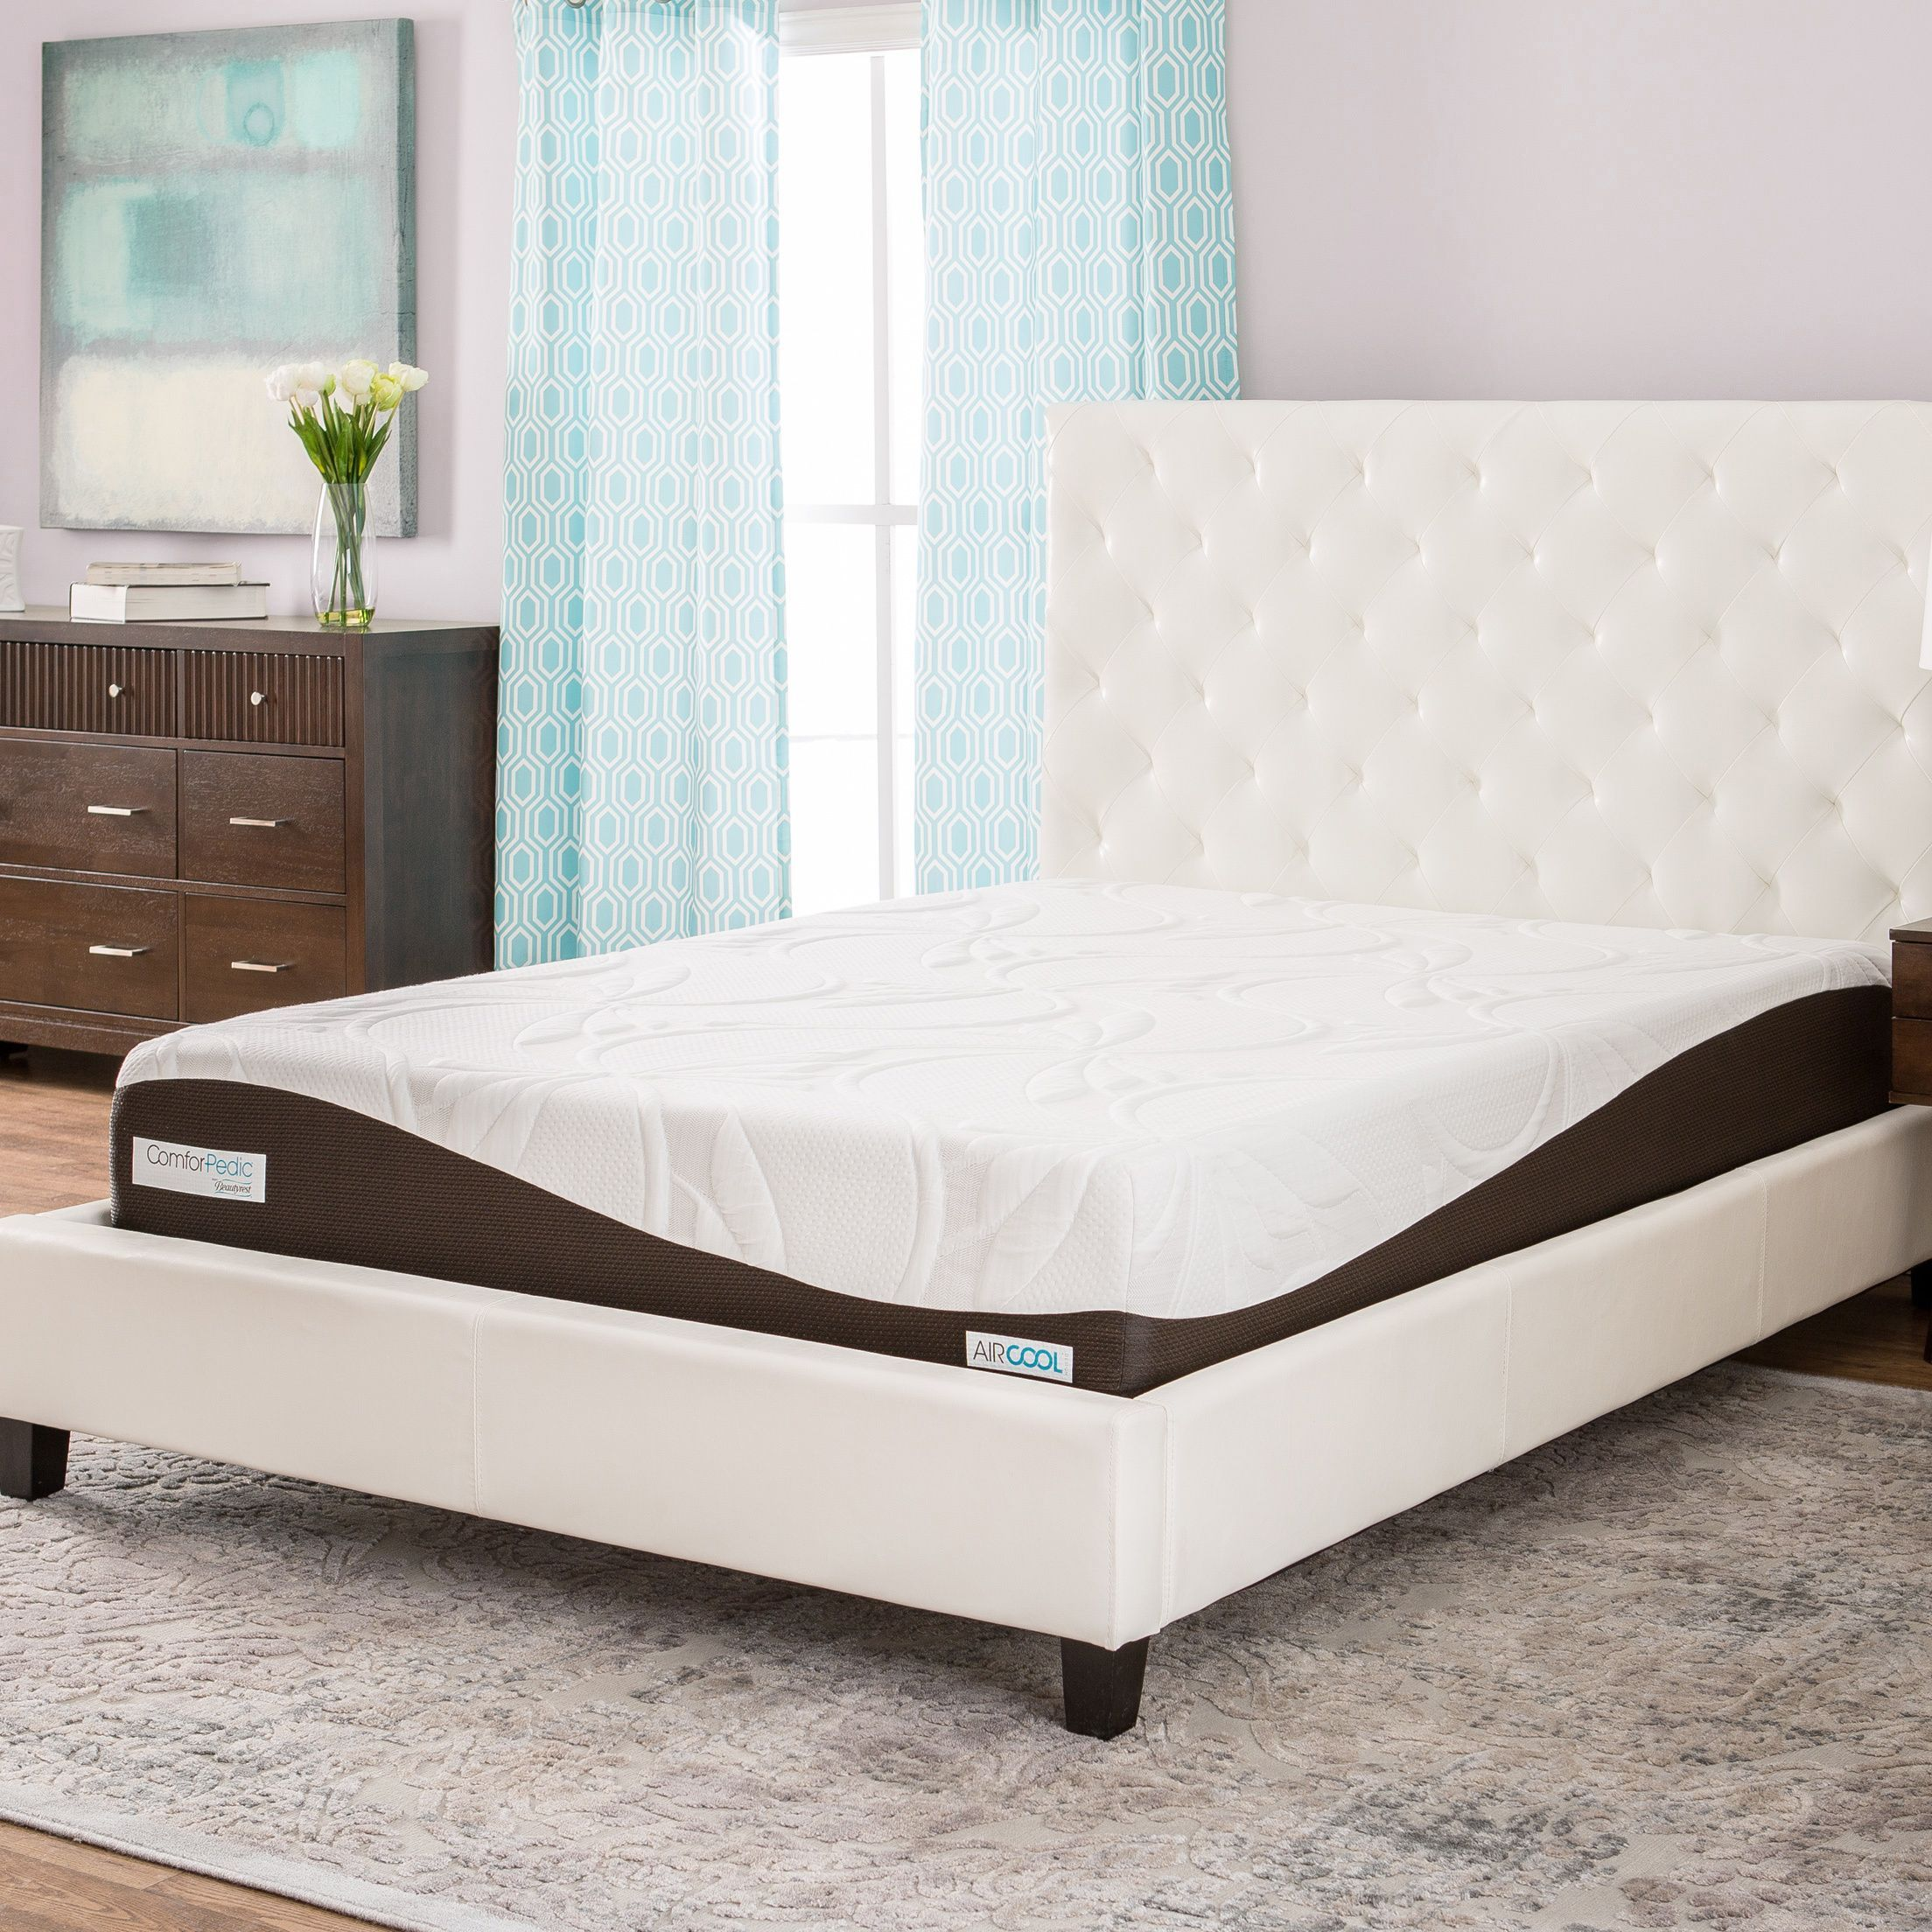 comforpedic from beautyrest 10 inch twin size memory foam mattress